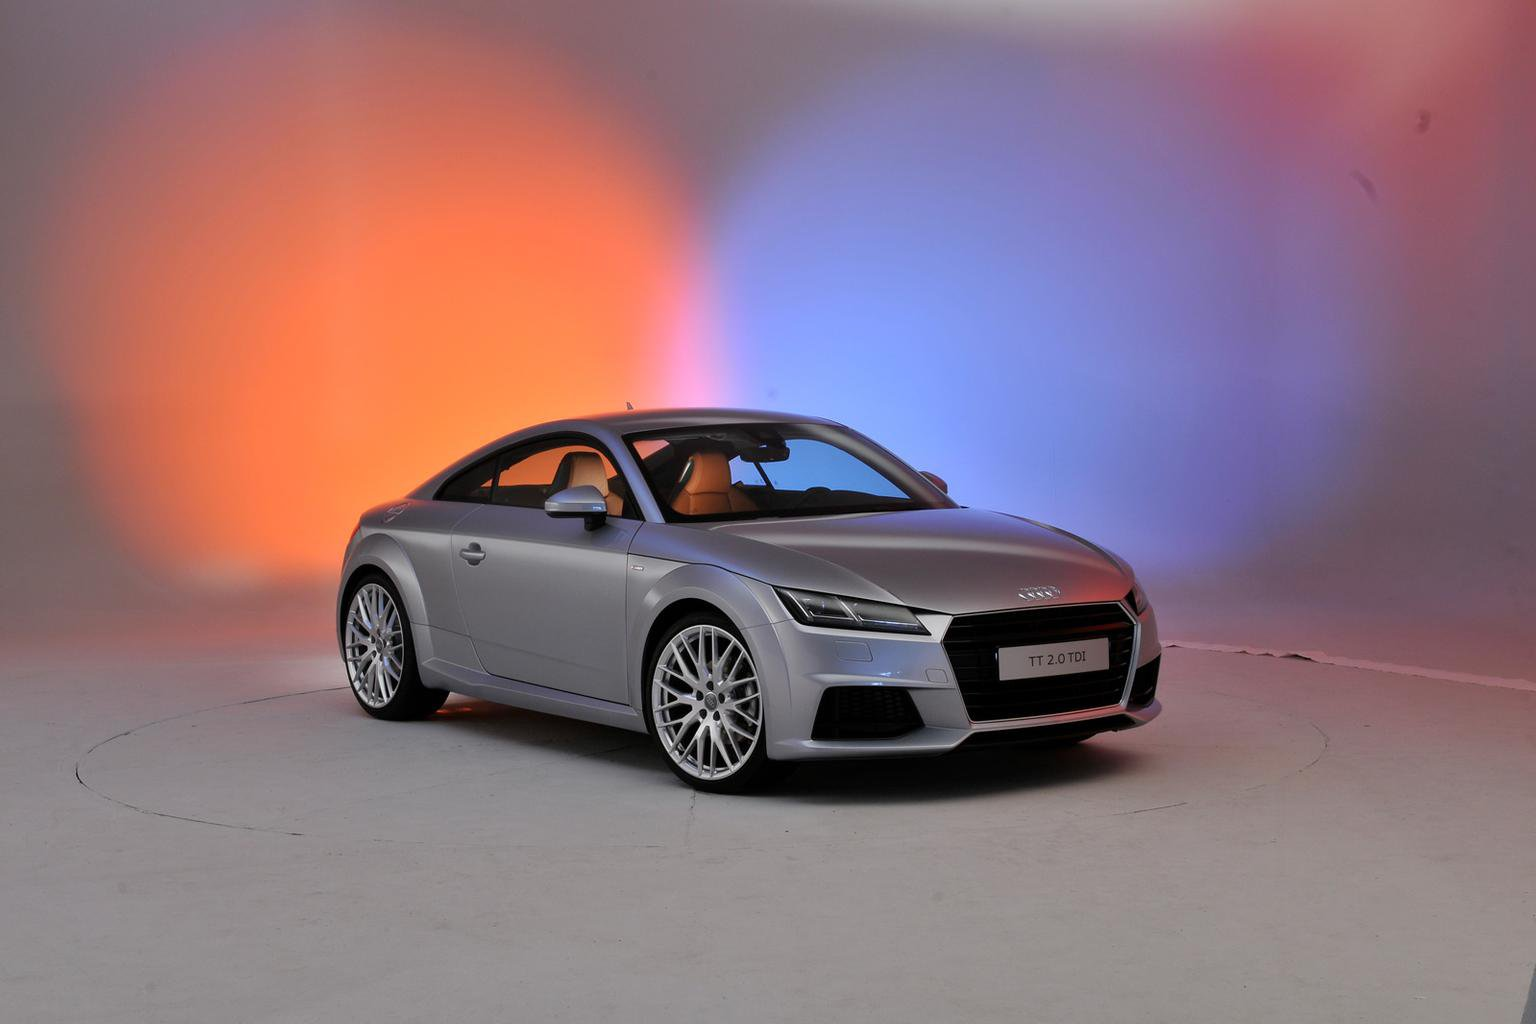 Video: Readers review the 2014 Audi TT